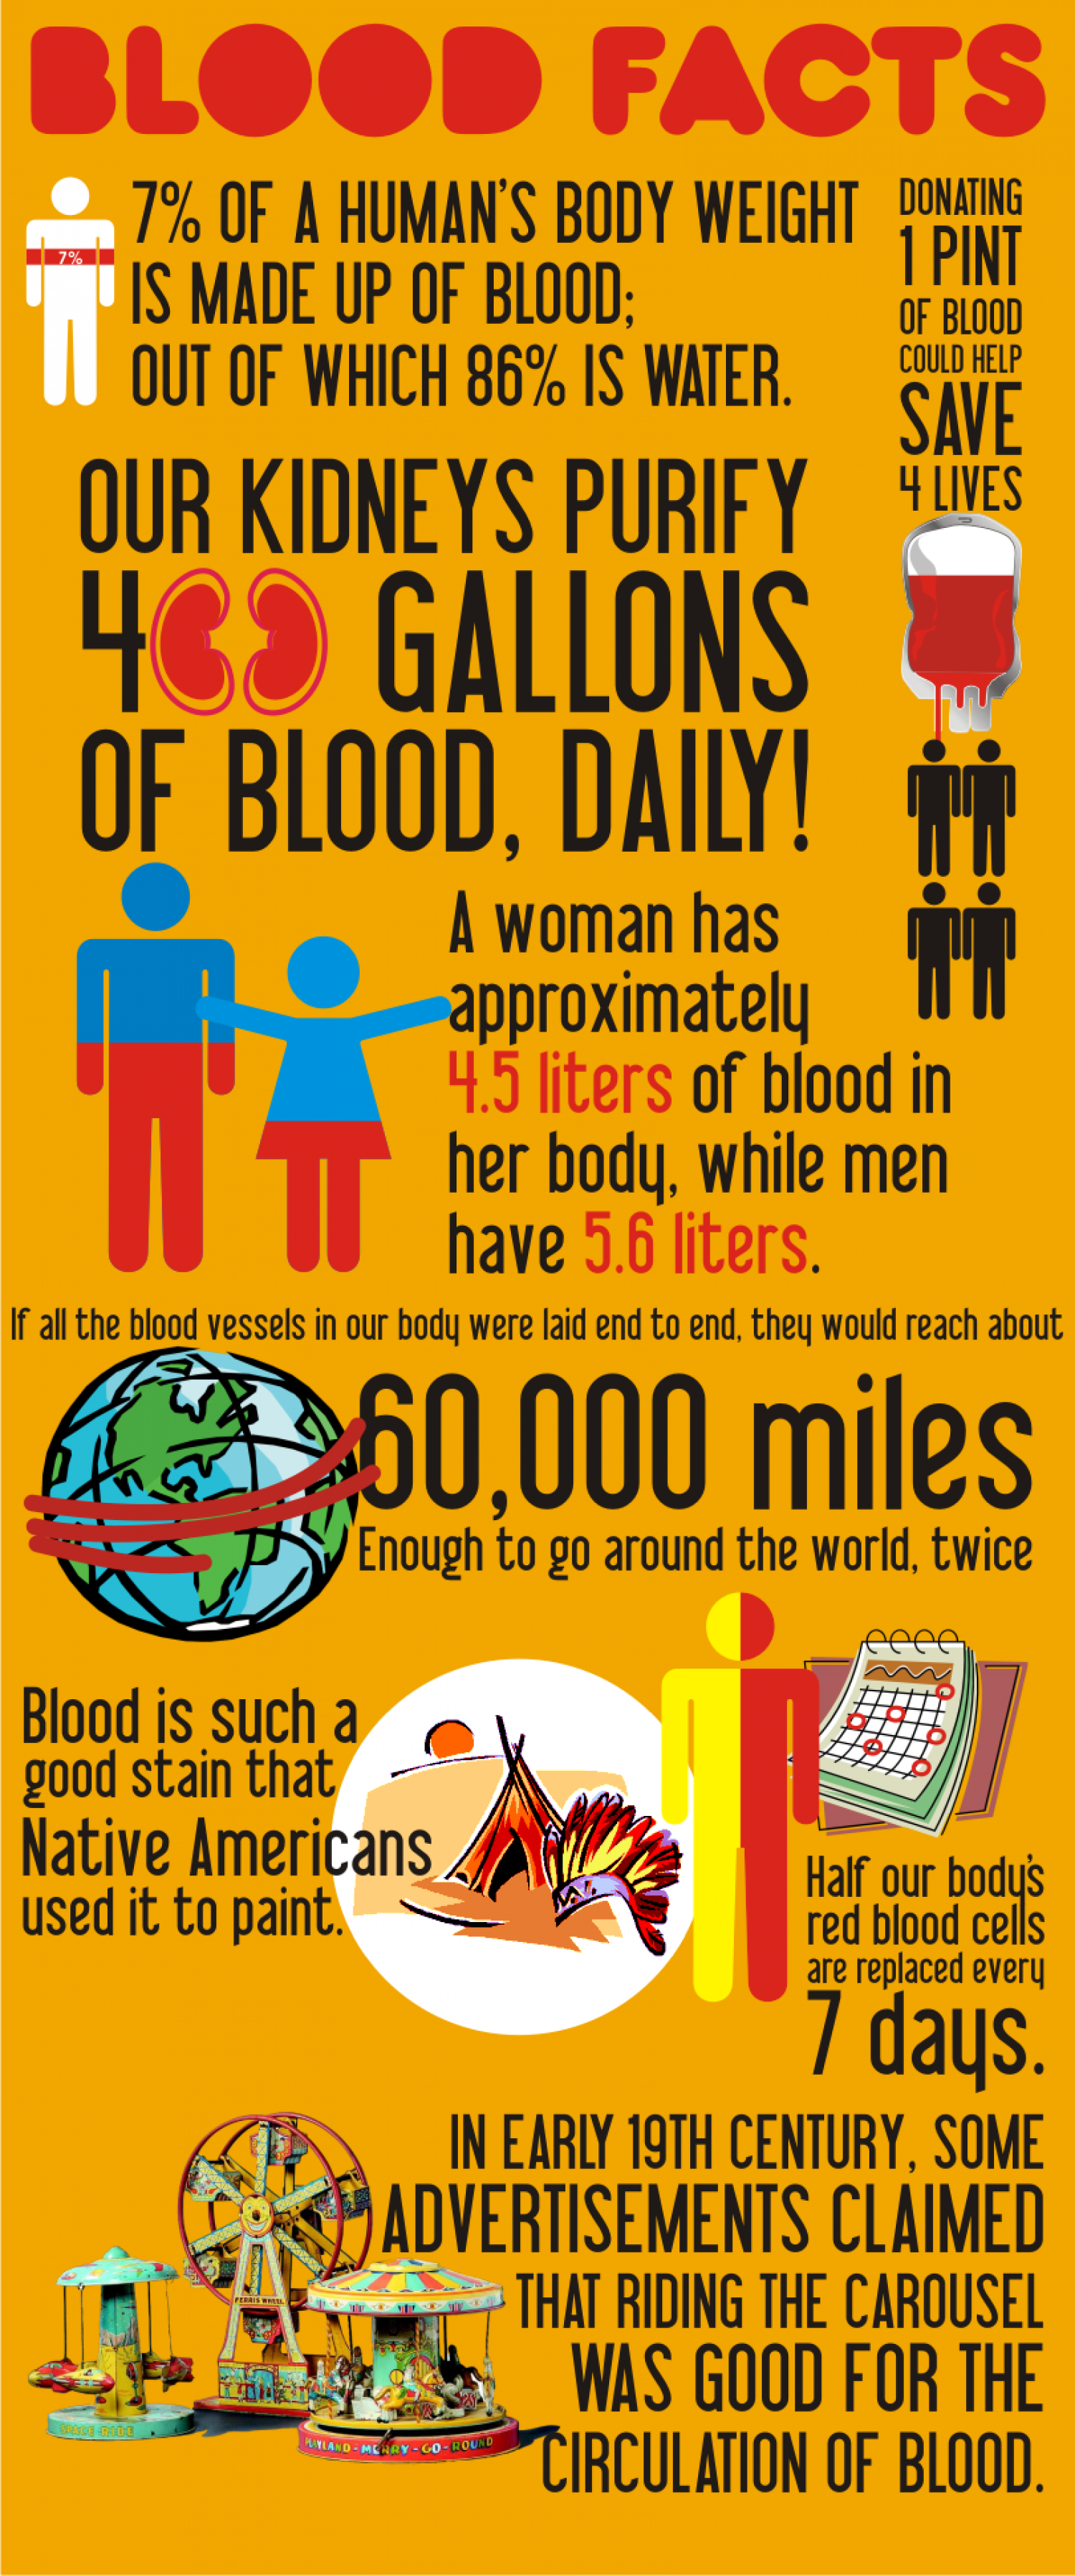 Blood Facts Infographic